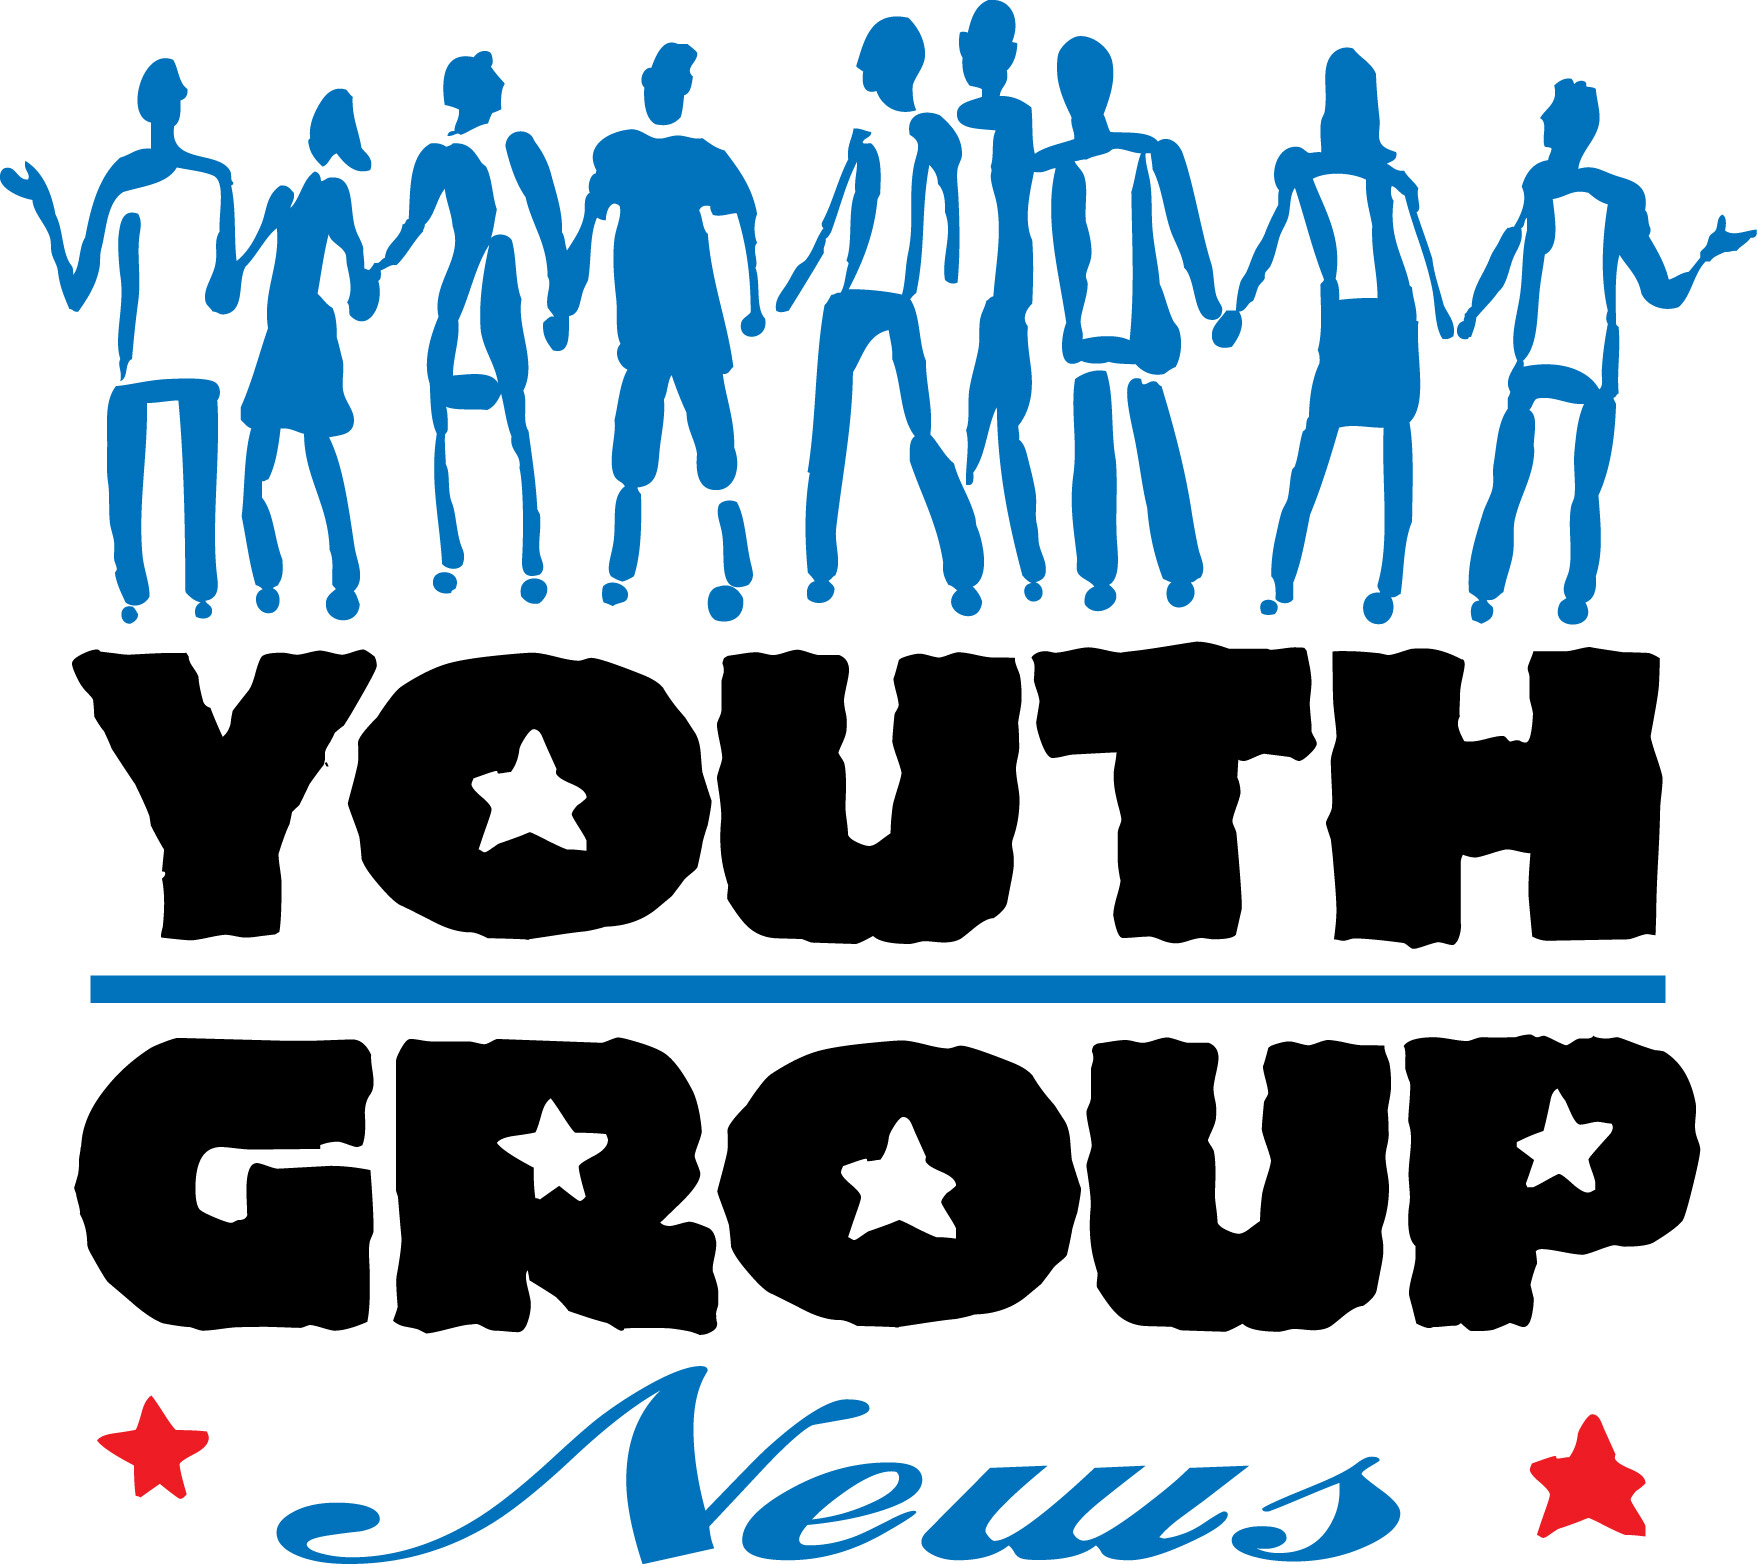 Club clipart youth leadership Images Art Panda youth%20clipart Youth